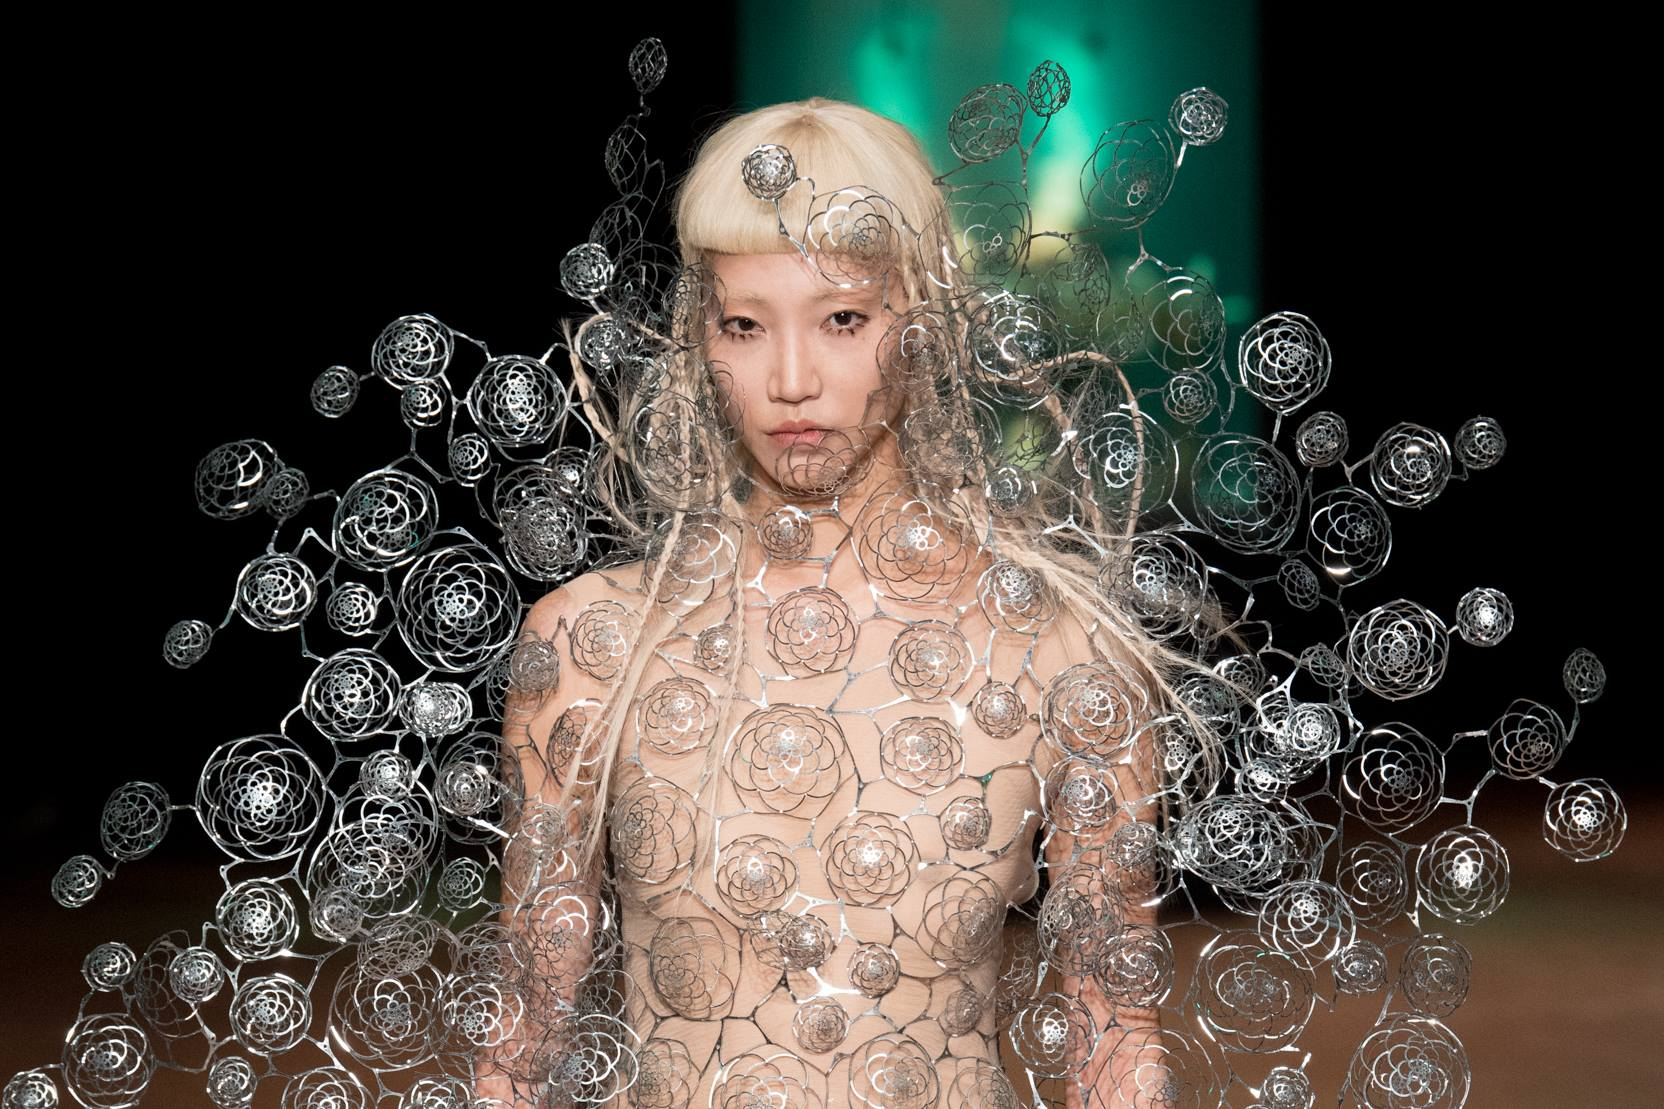 A piece from Philip Beesley's collaboration with Iris van Herpen on her Aeriform collection, premiered on the runway in Paris 2017.